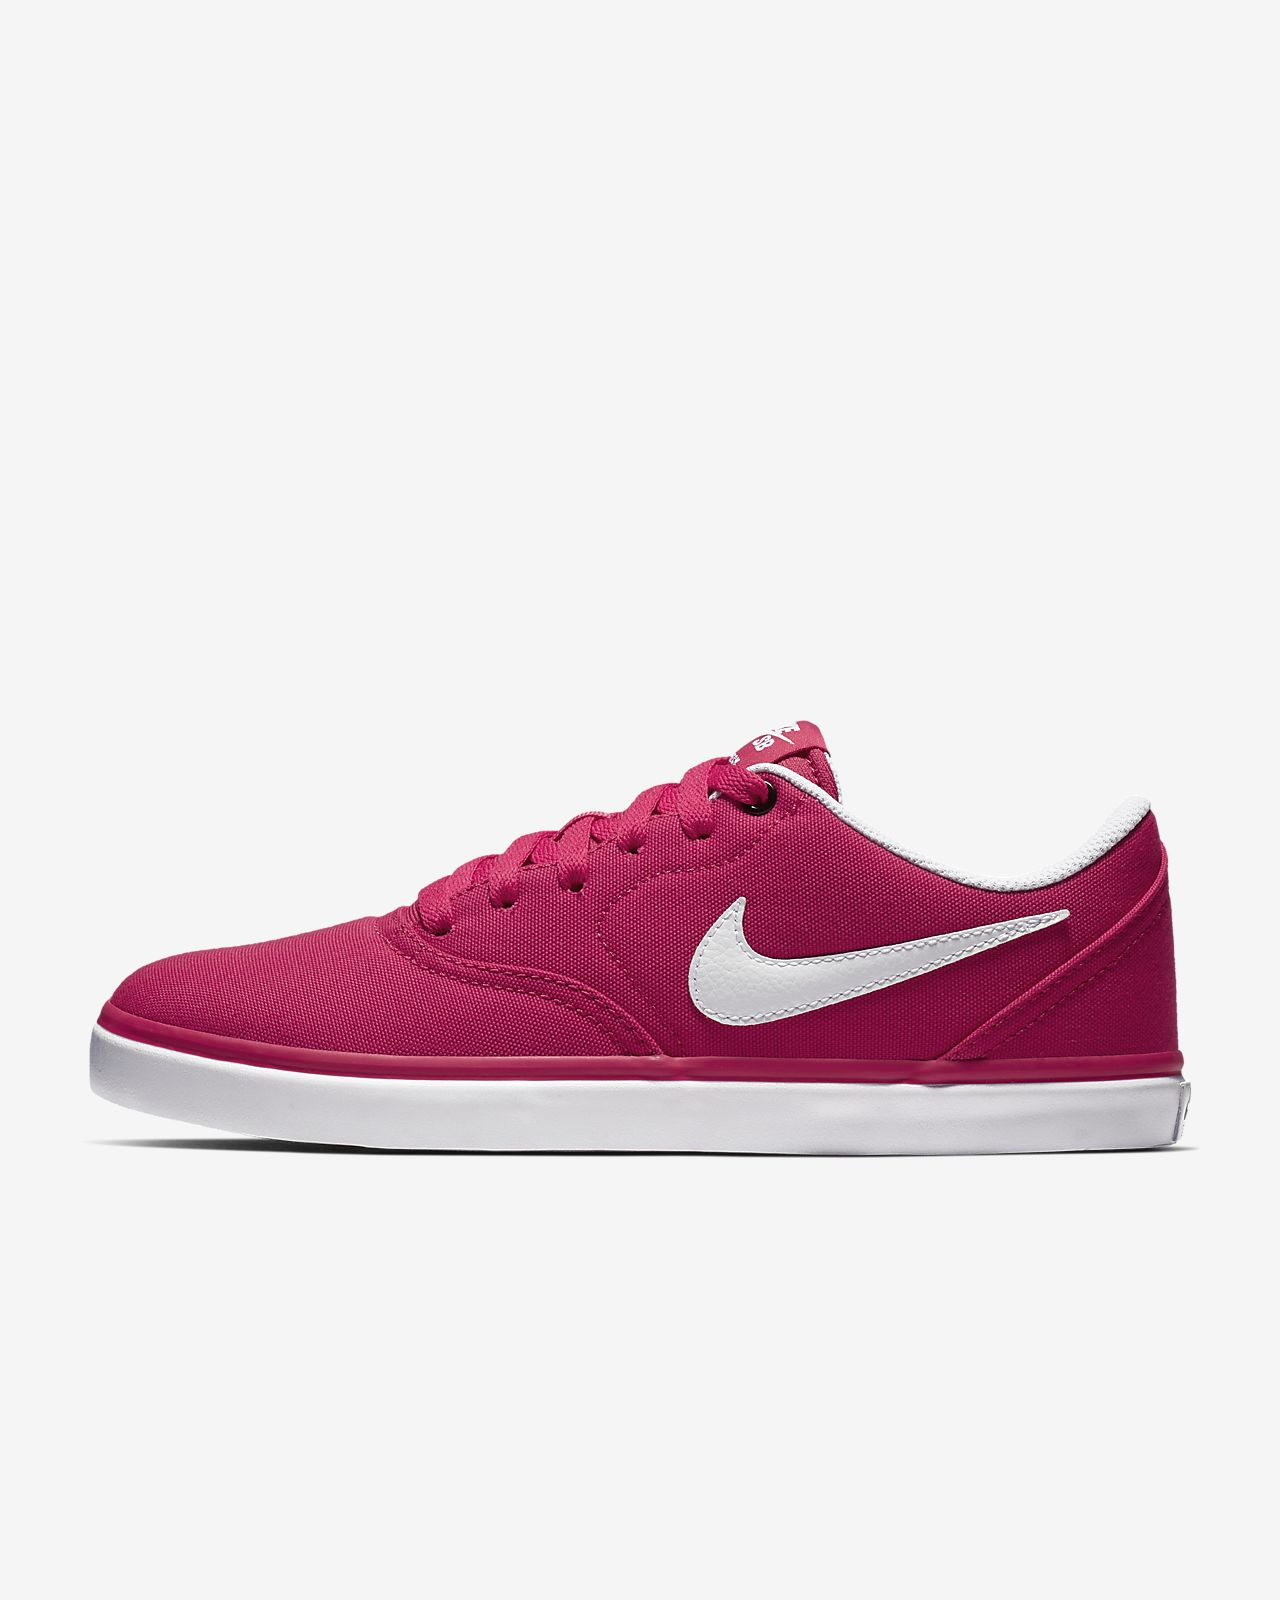 big sale 59e39 97cbe ... Chaussure de skateboard Nike SB Check Solarsoft Canvas pour Femme